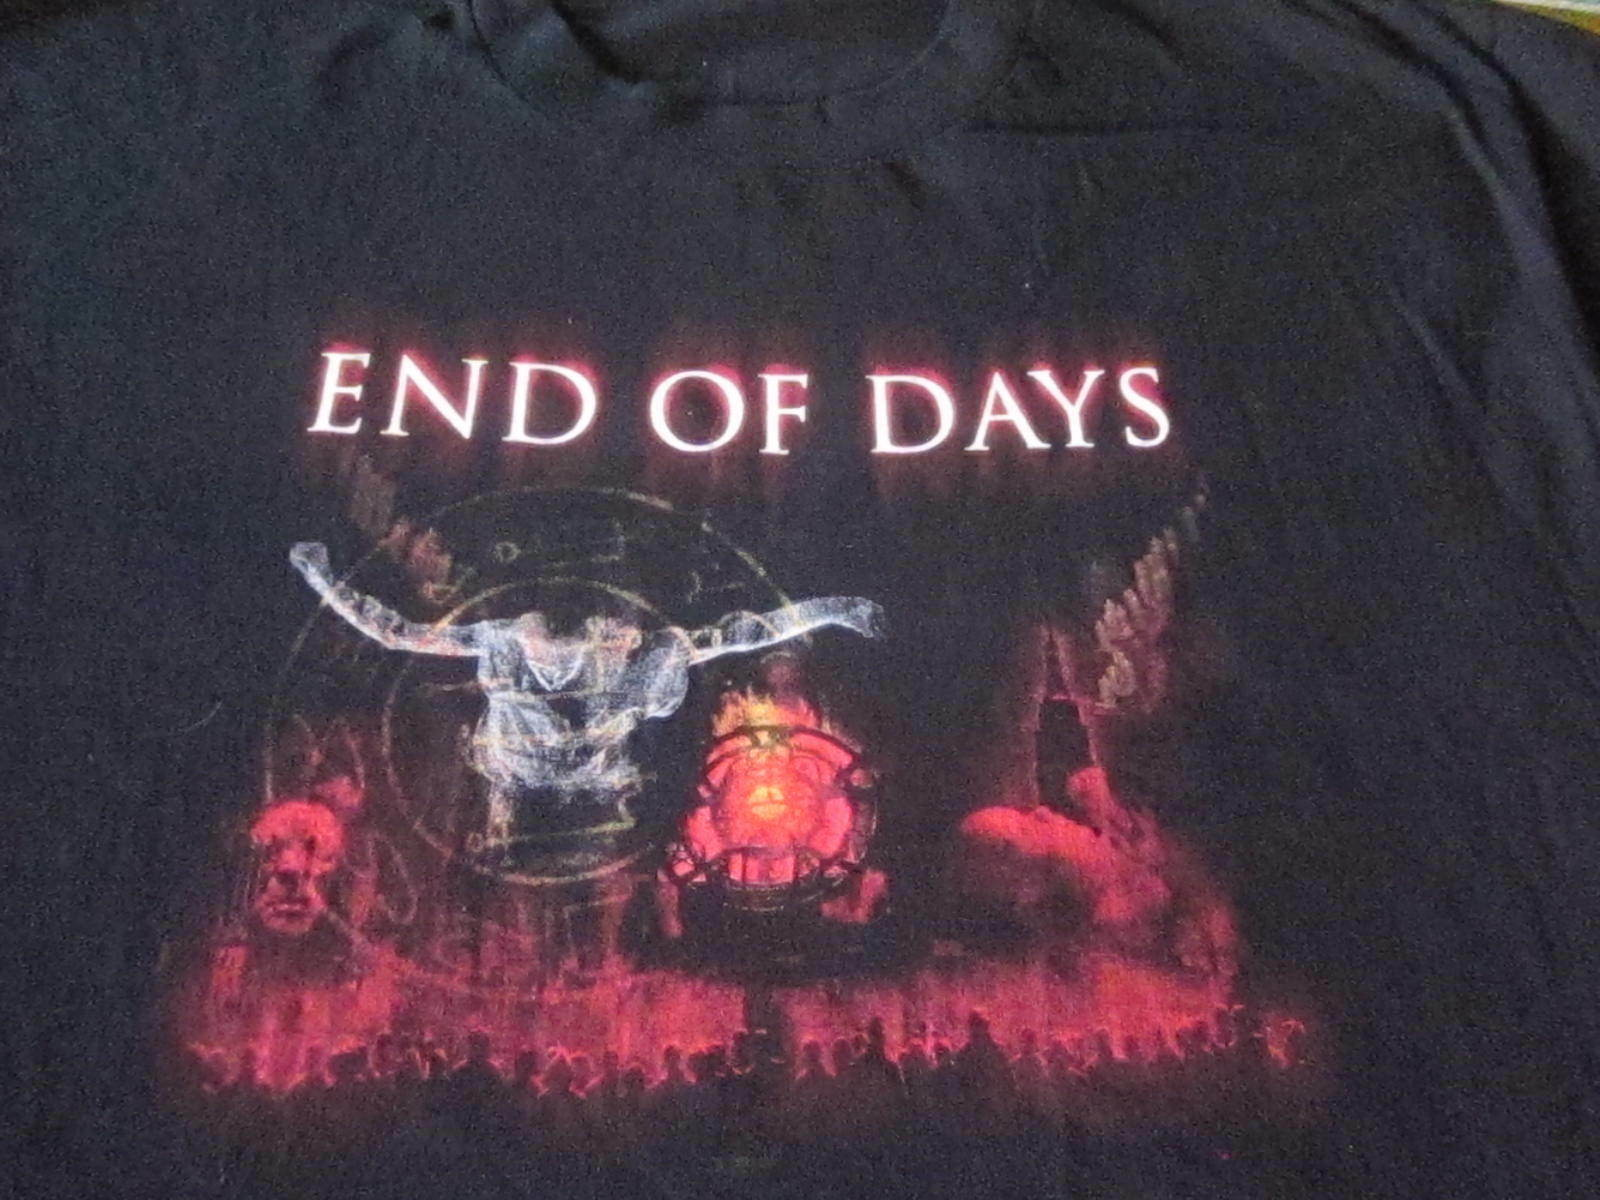 END OF DAYS PROMO TEE SHIRT XL MOVIE CLEAN